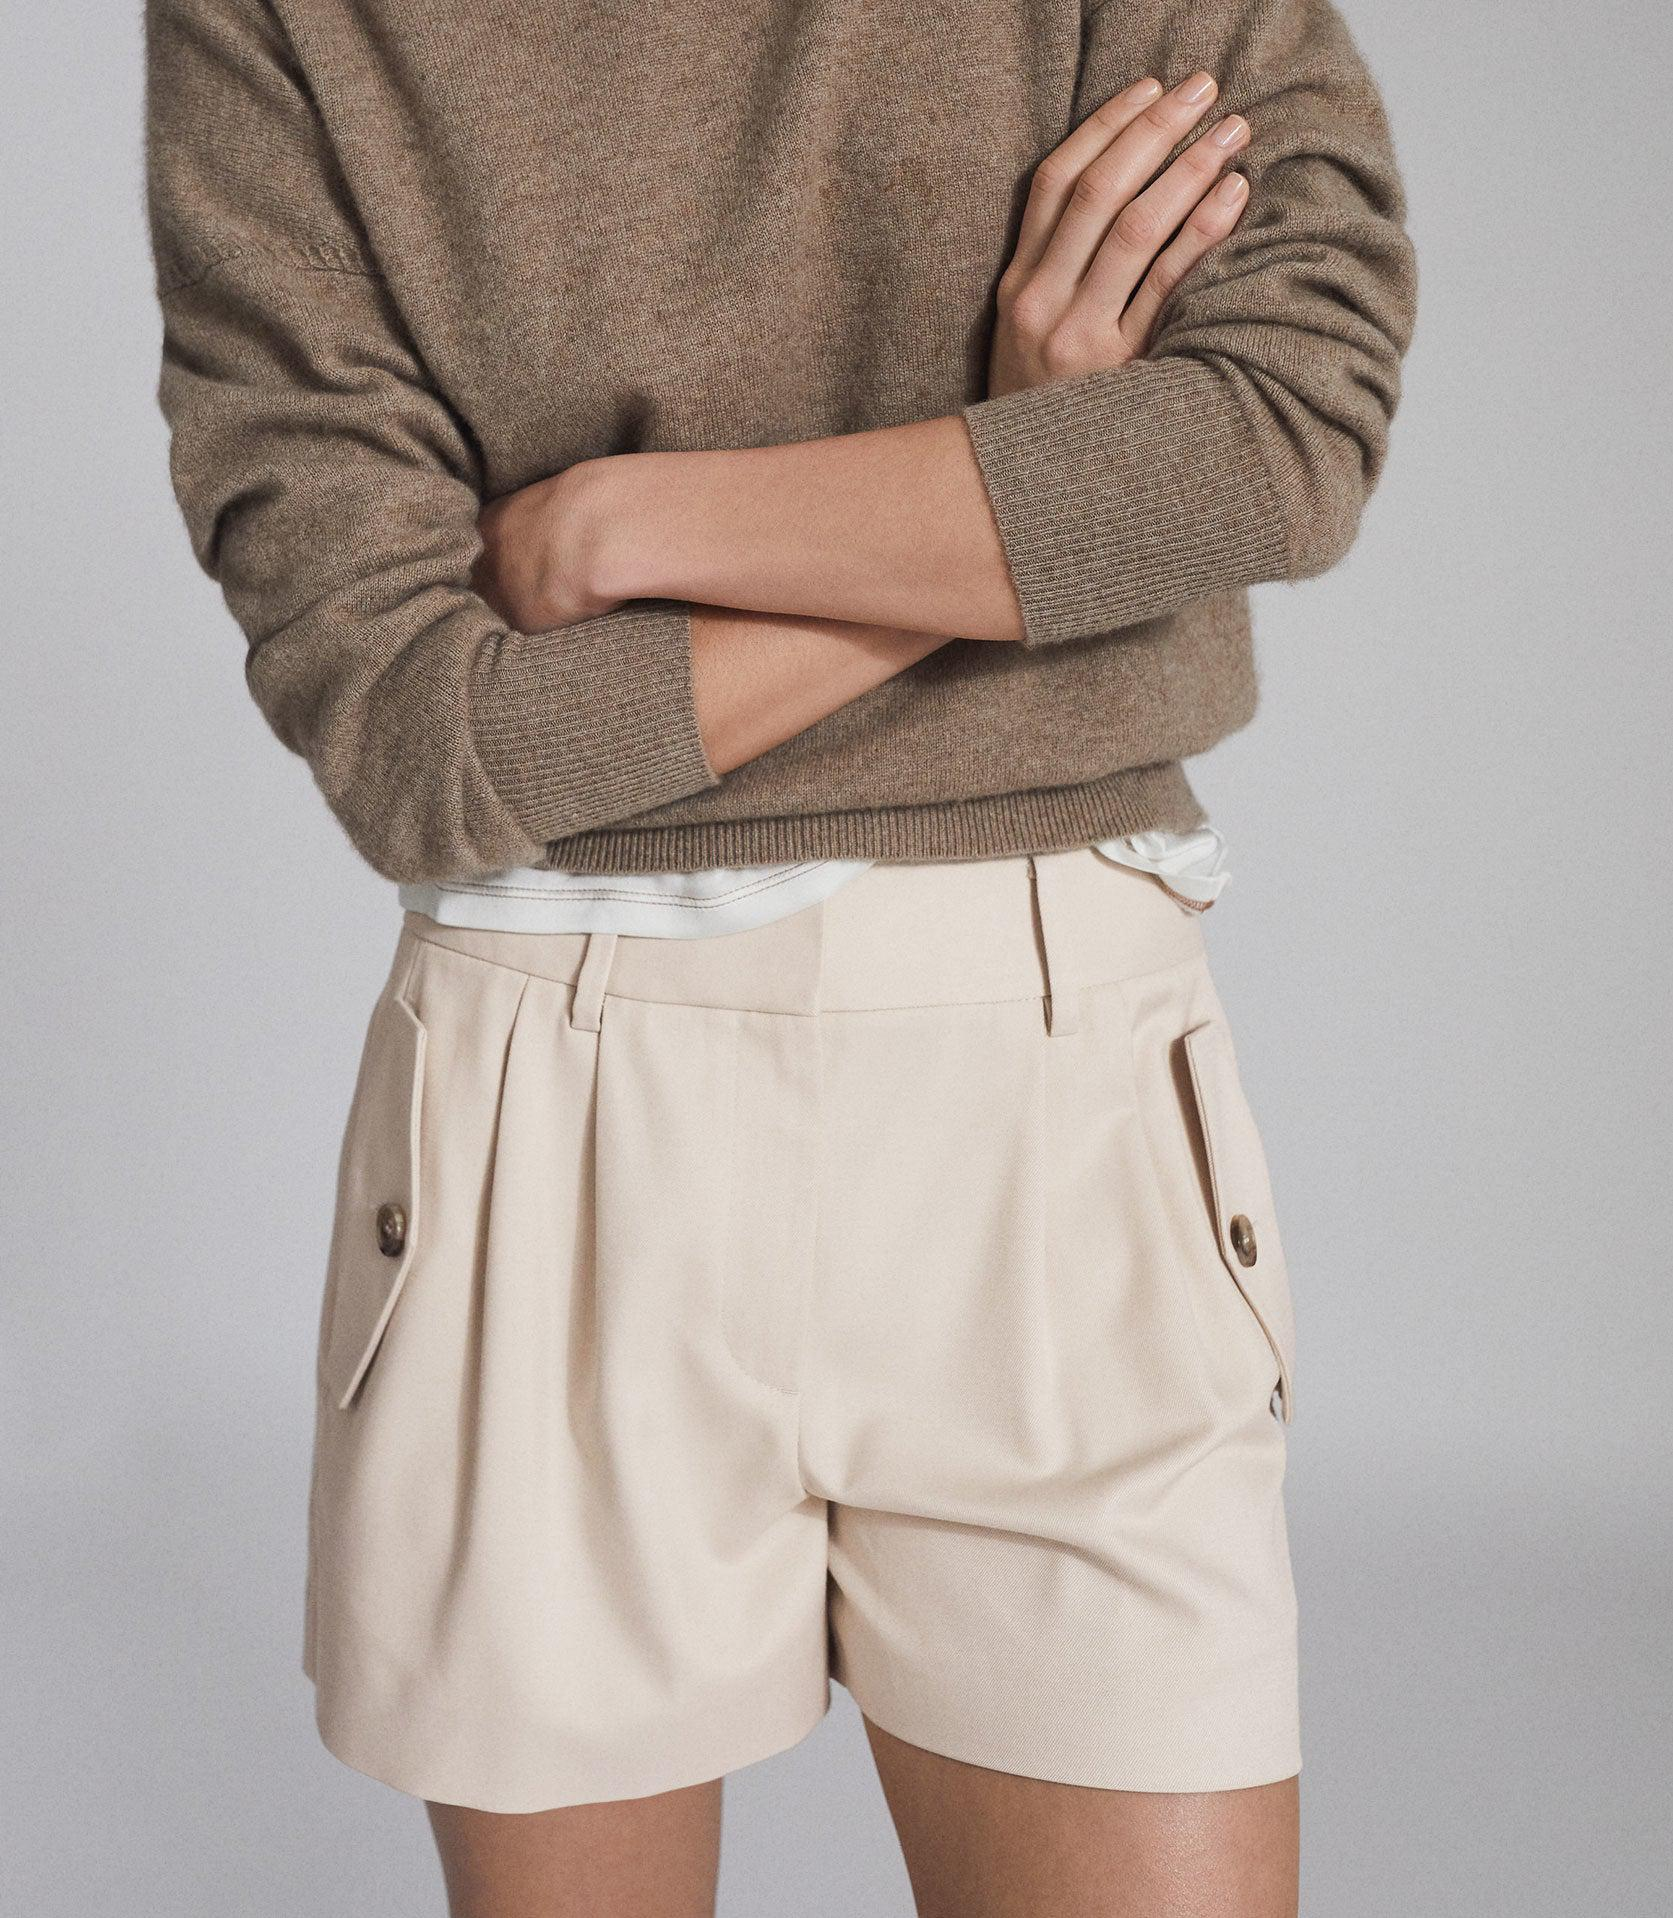 BROOKLYN - POCKET FRONT TAILORED SHORTS 4